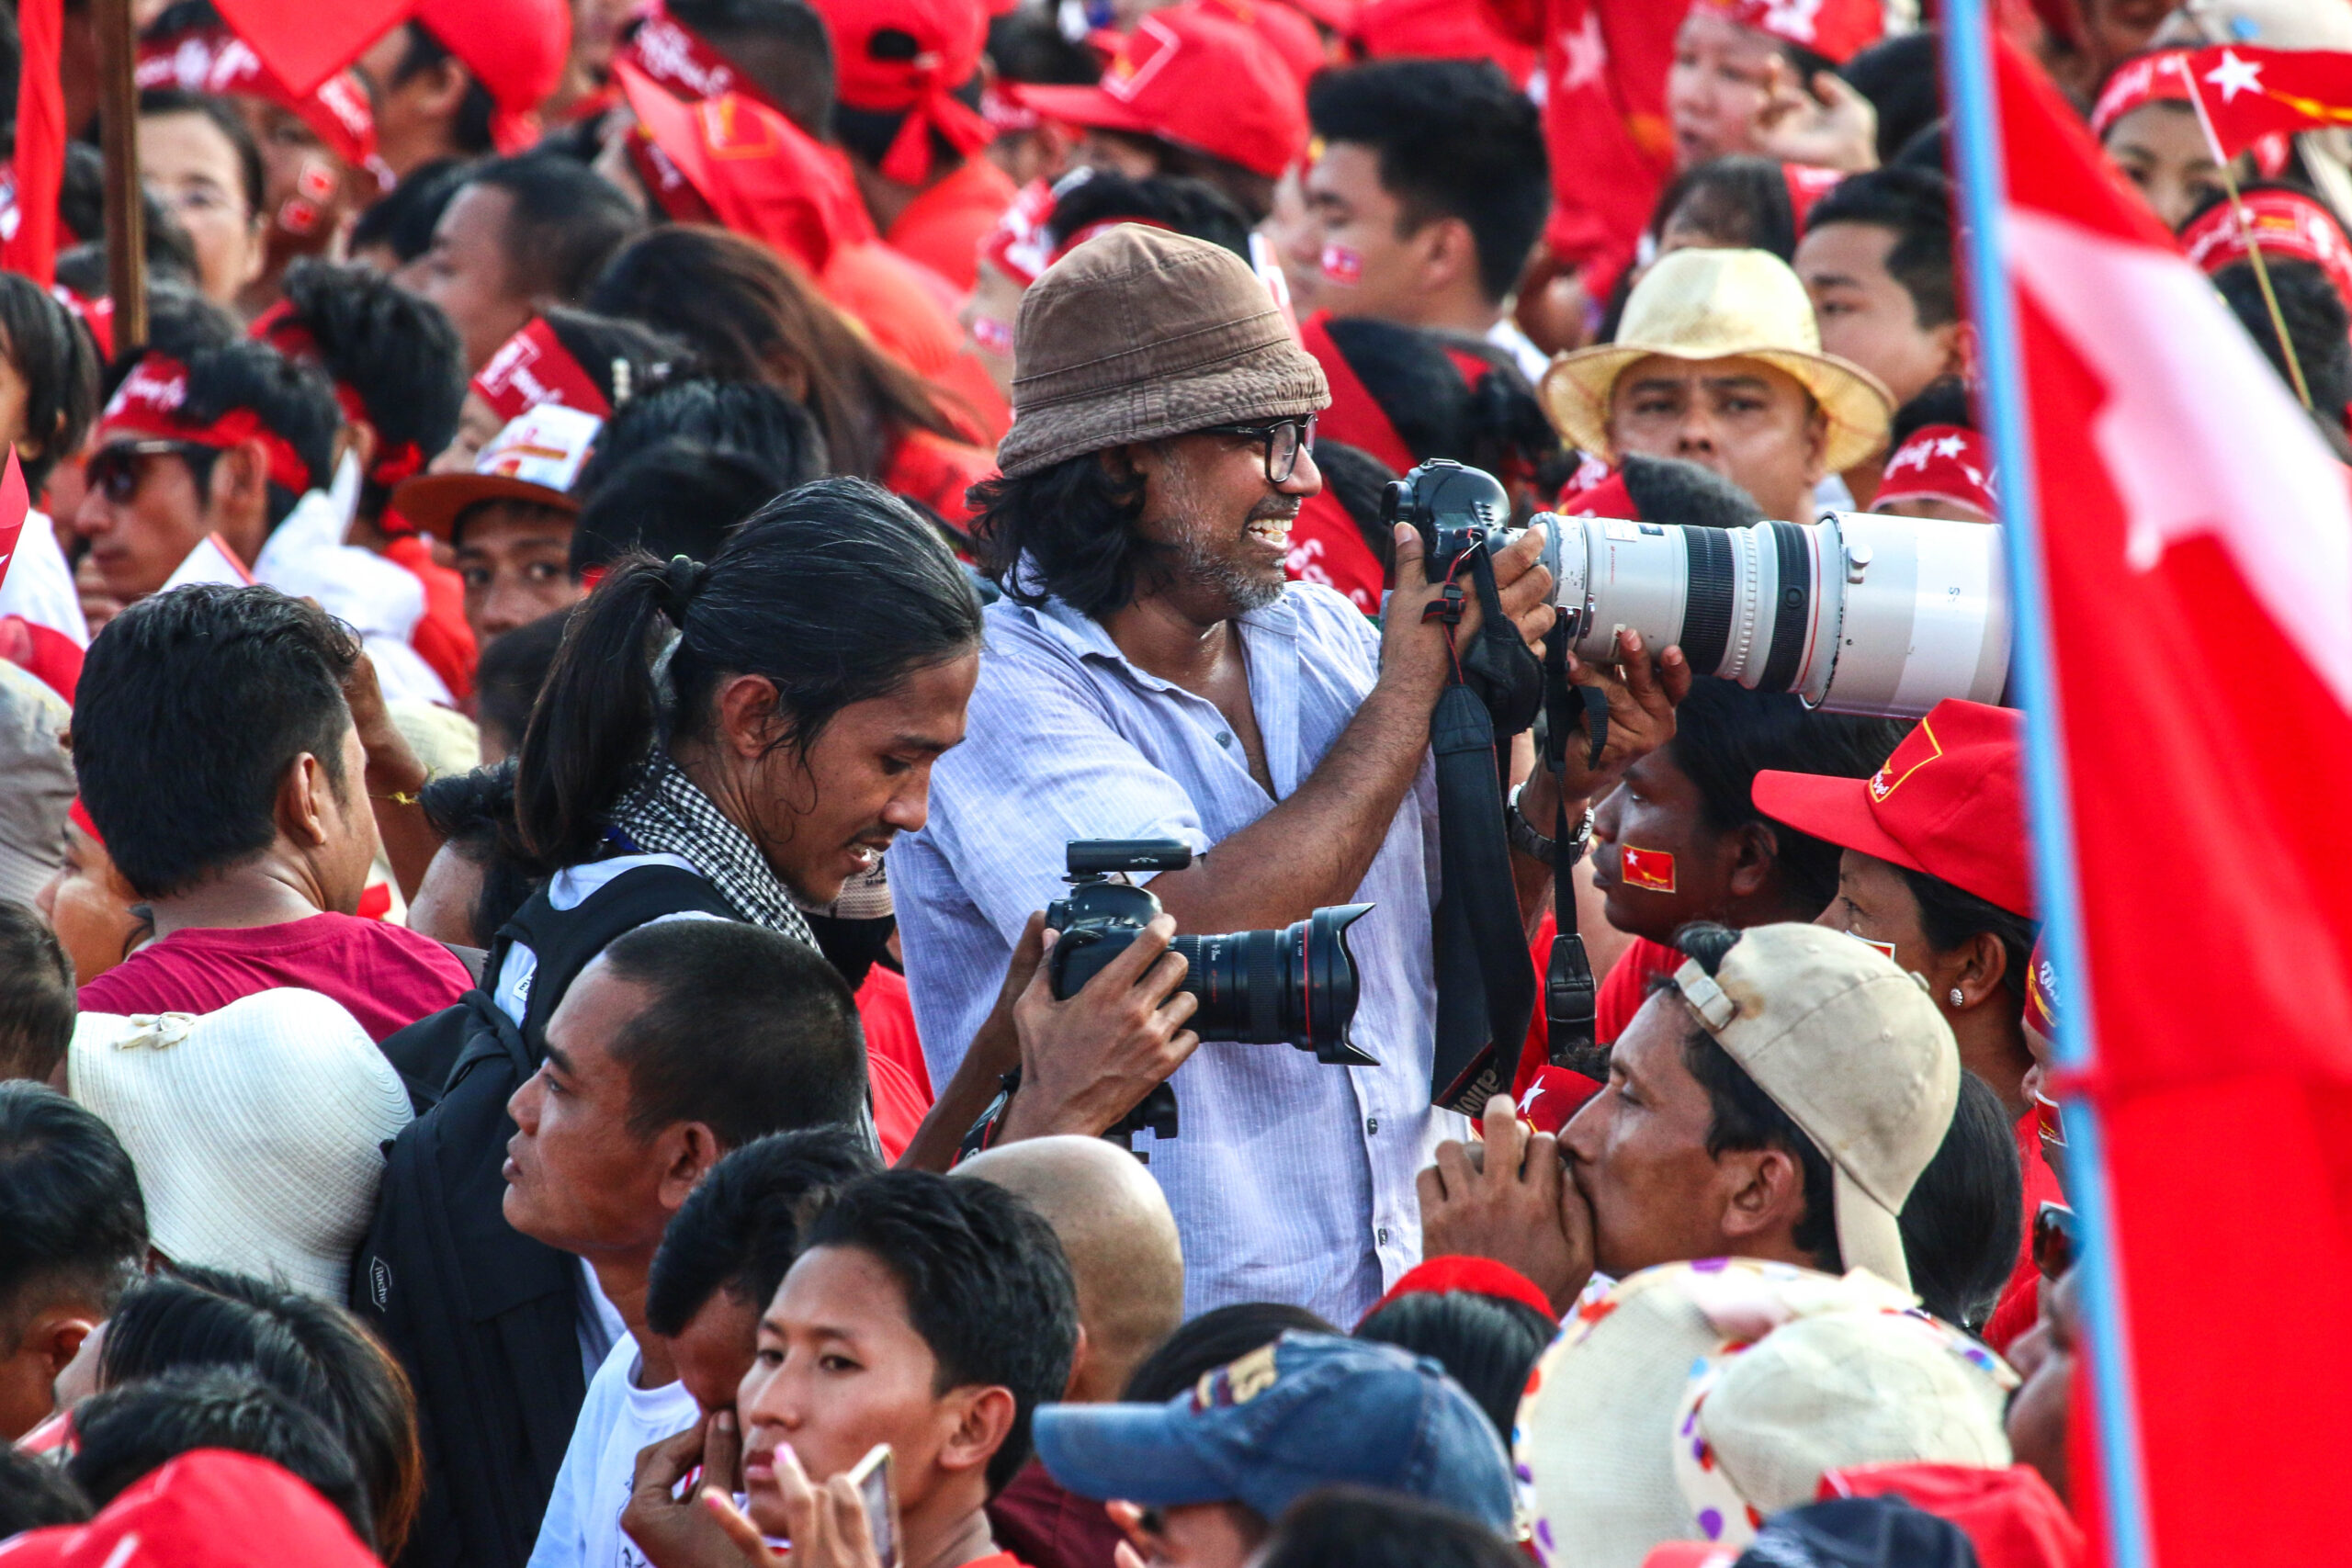 Photographers ina crowd of red flags during the 2015 Myanmar elections